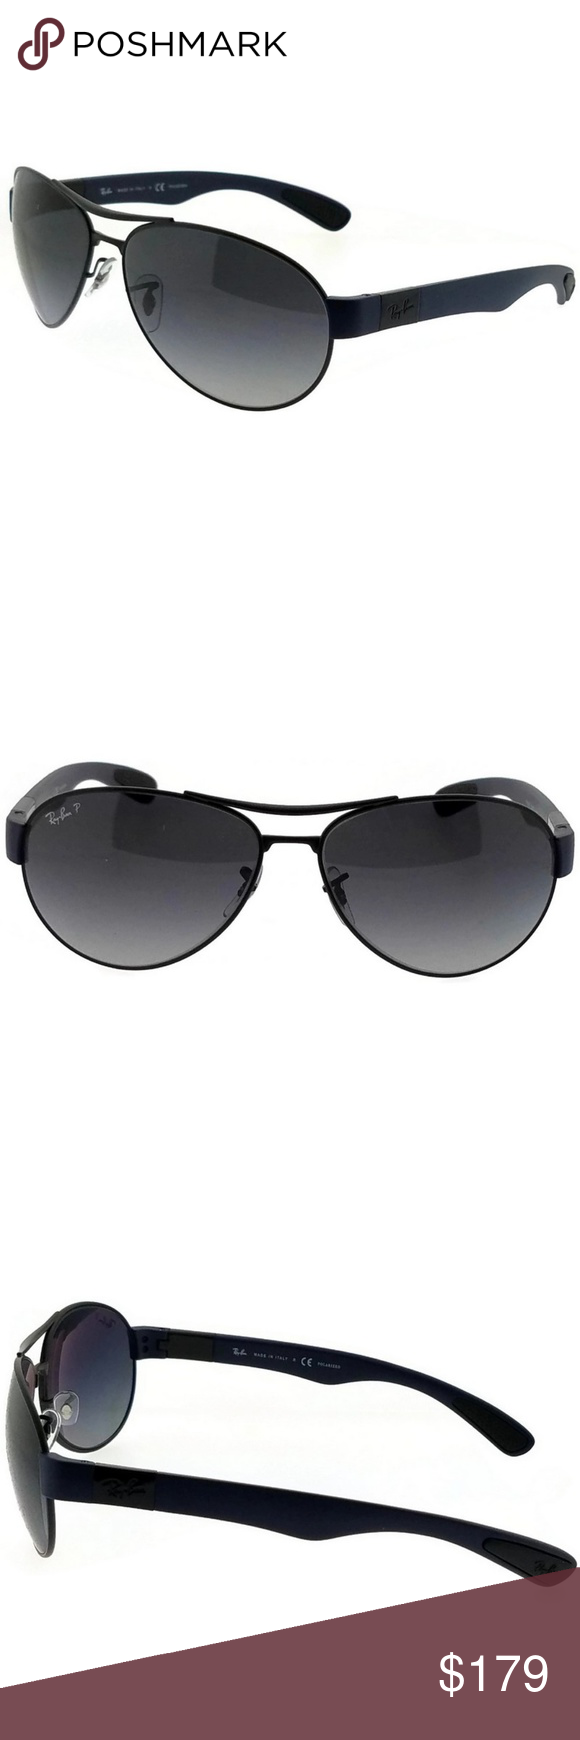 4e24c2aef7 RB3509-006T3-63 RAY BAN SUNGLASSES New gorgeous authentic Ray-Ban RB3509-